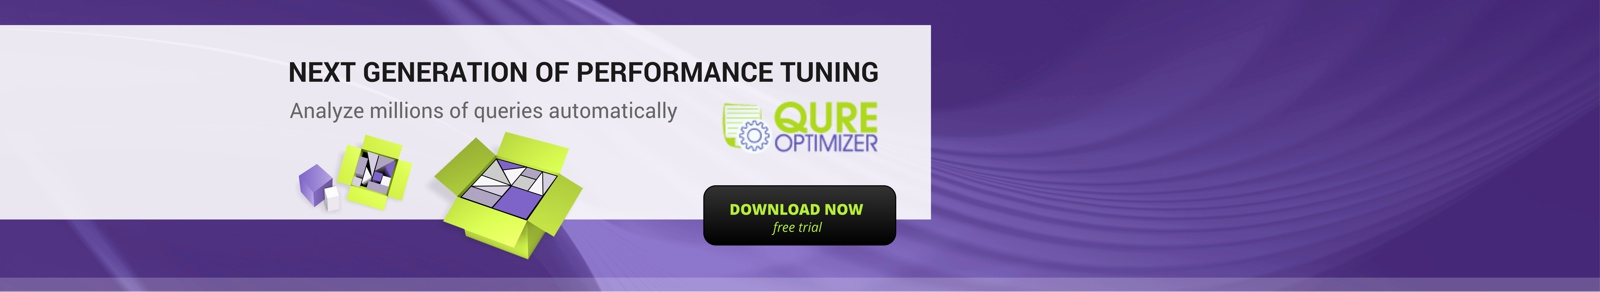 qure-optimizer